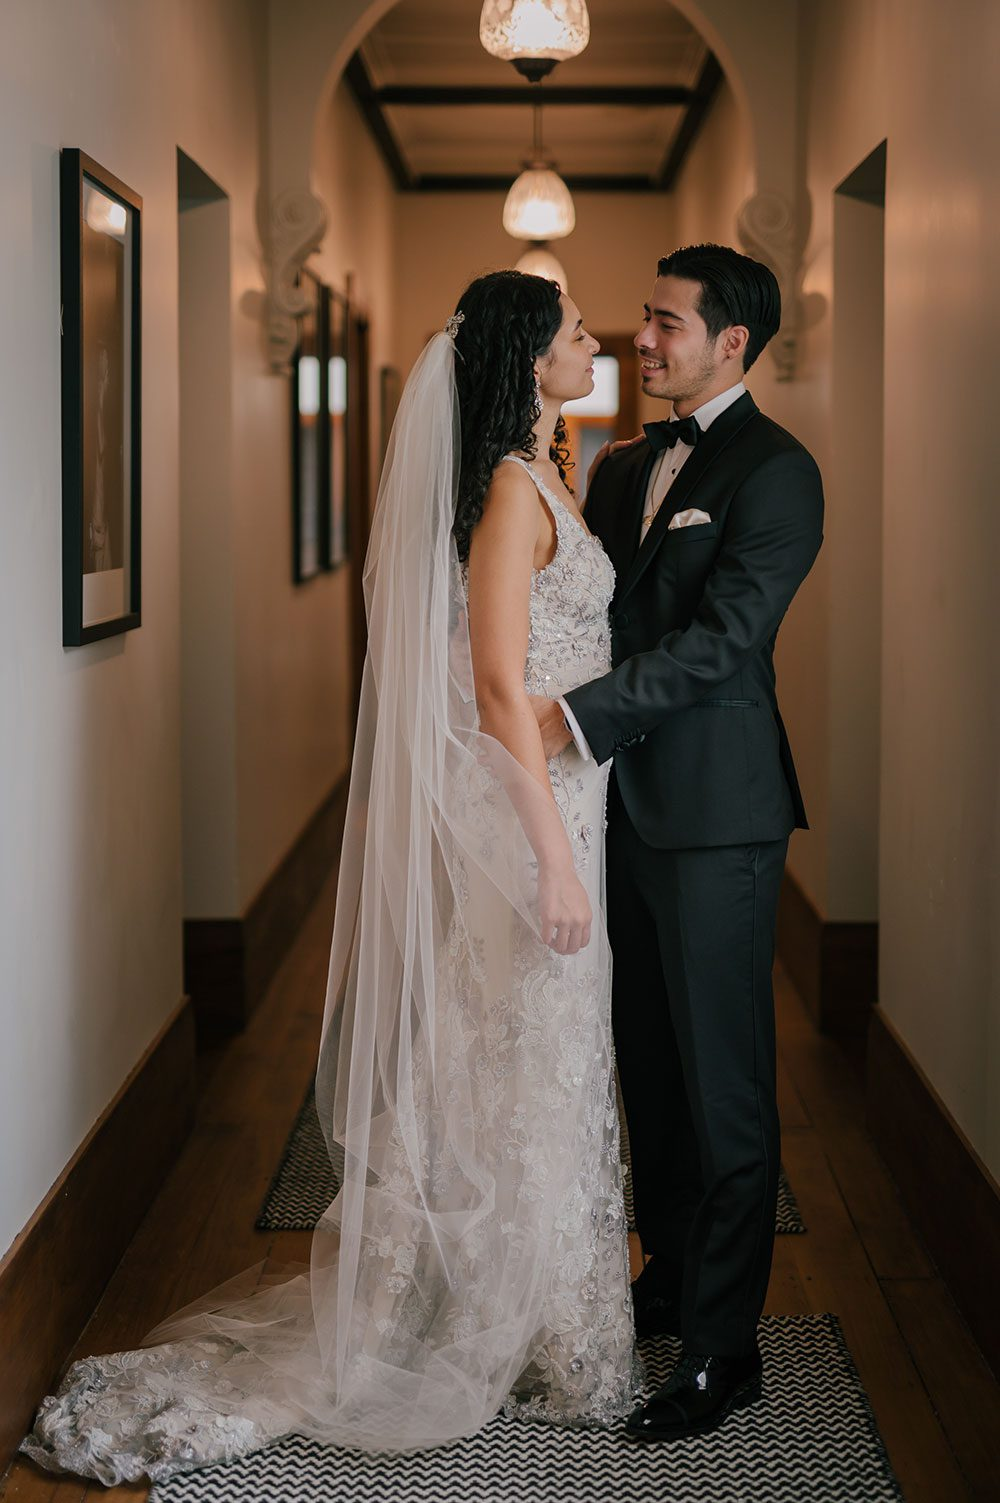 Bride wearing Kazumi Gown in soft grey with hand embellished lace and a low back - with groom in hallway